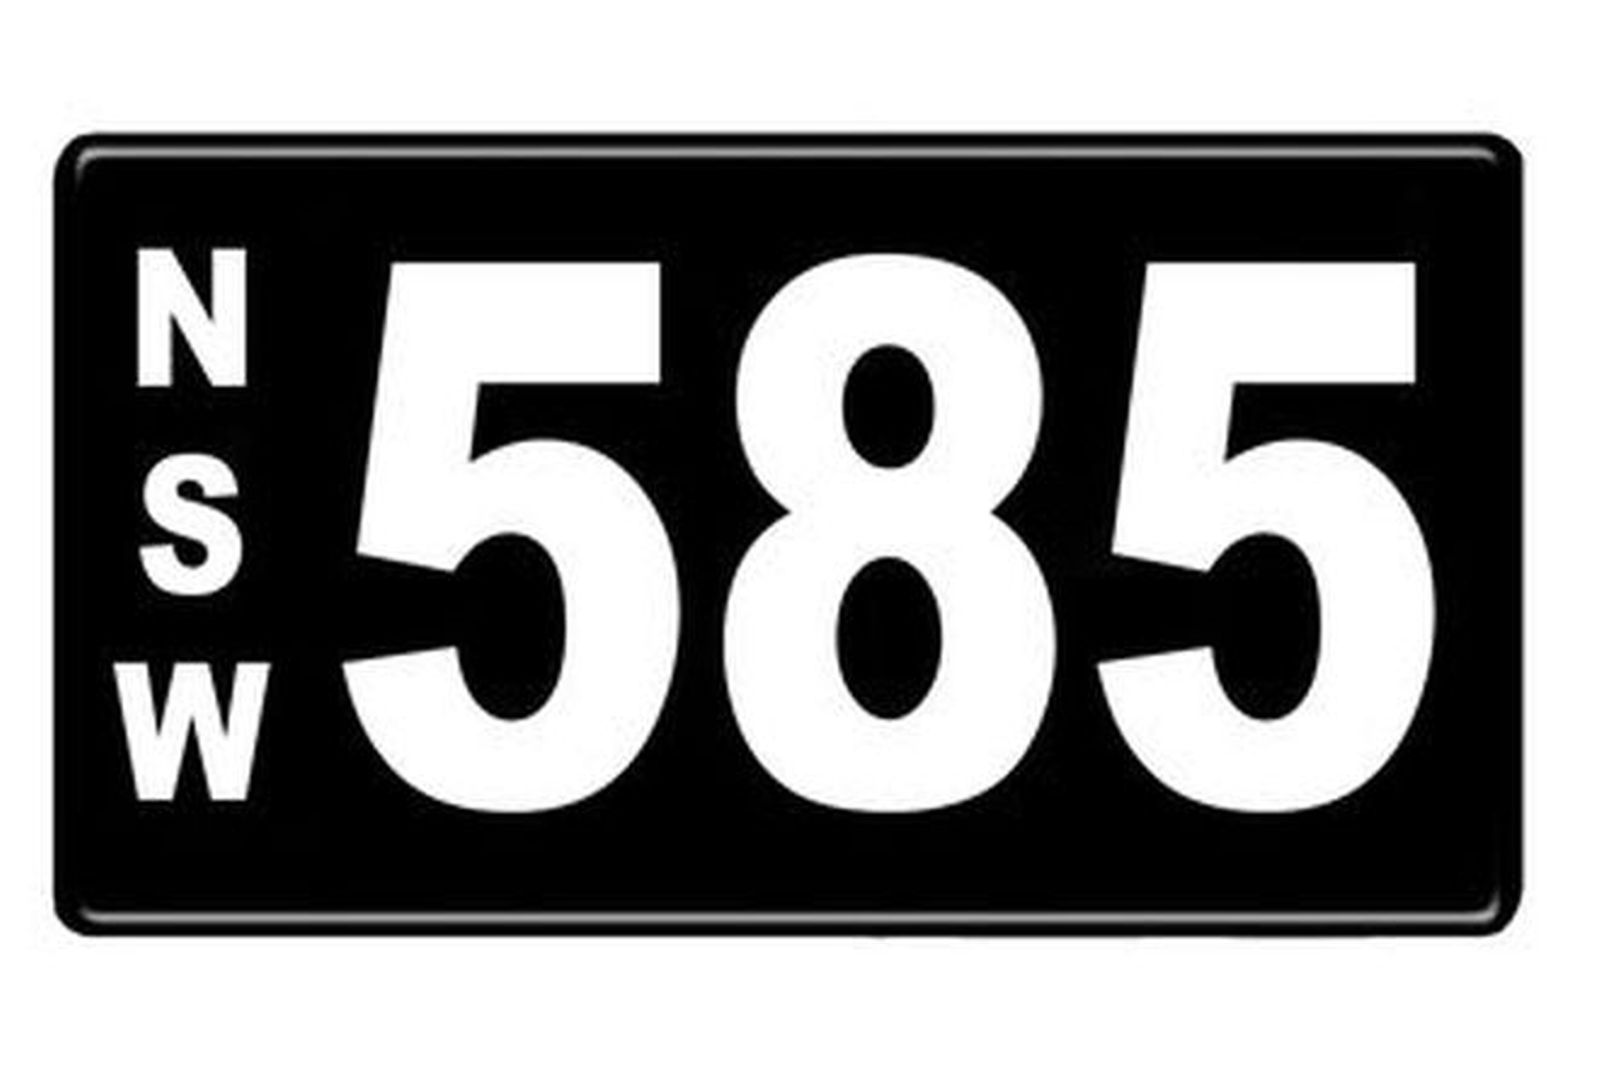 Number Plates - NSW Numerical Number Plates '585'